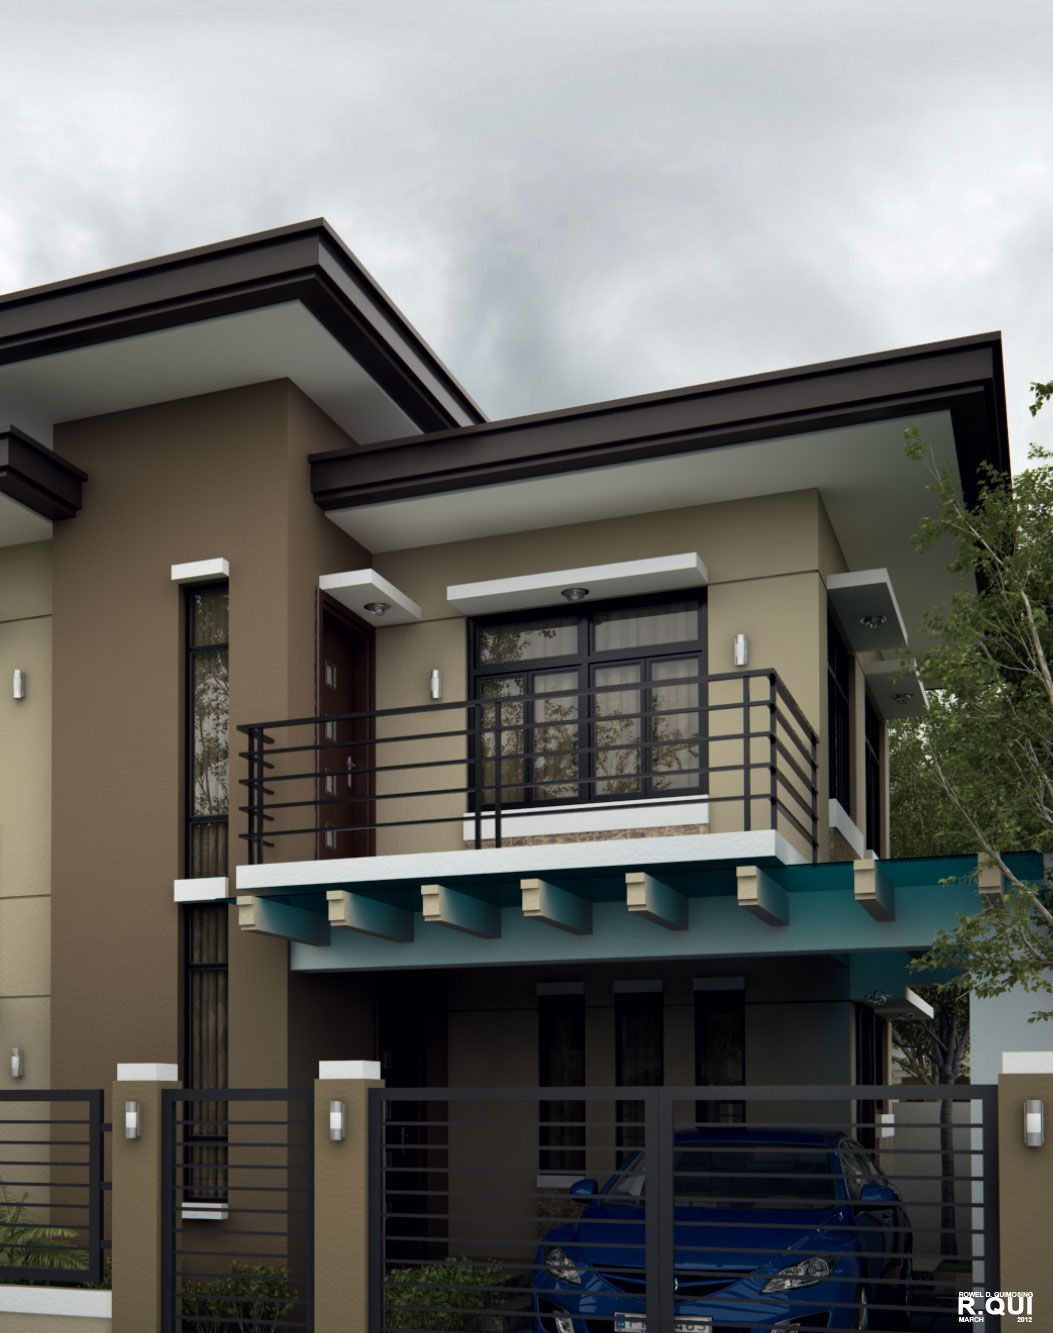 507e970d9d93765ac24cebe0866c5989 - View Small Narrow House Design Philippines  Pictures